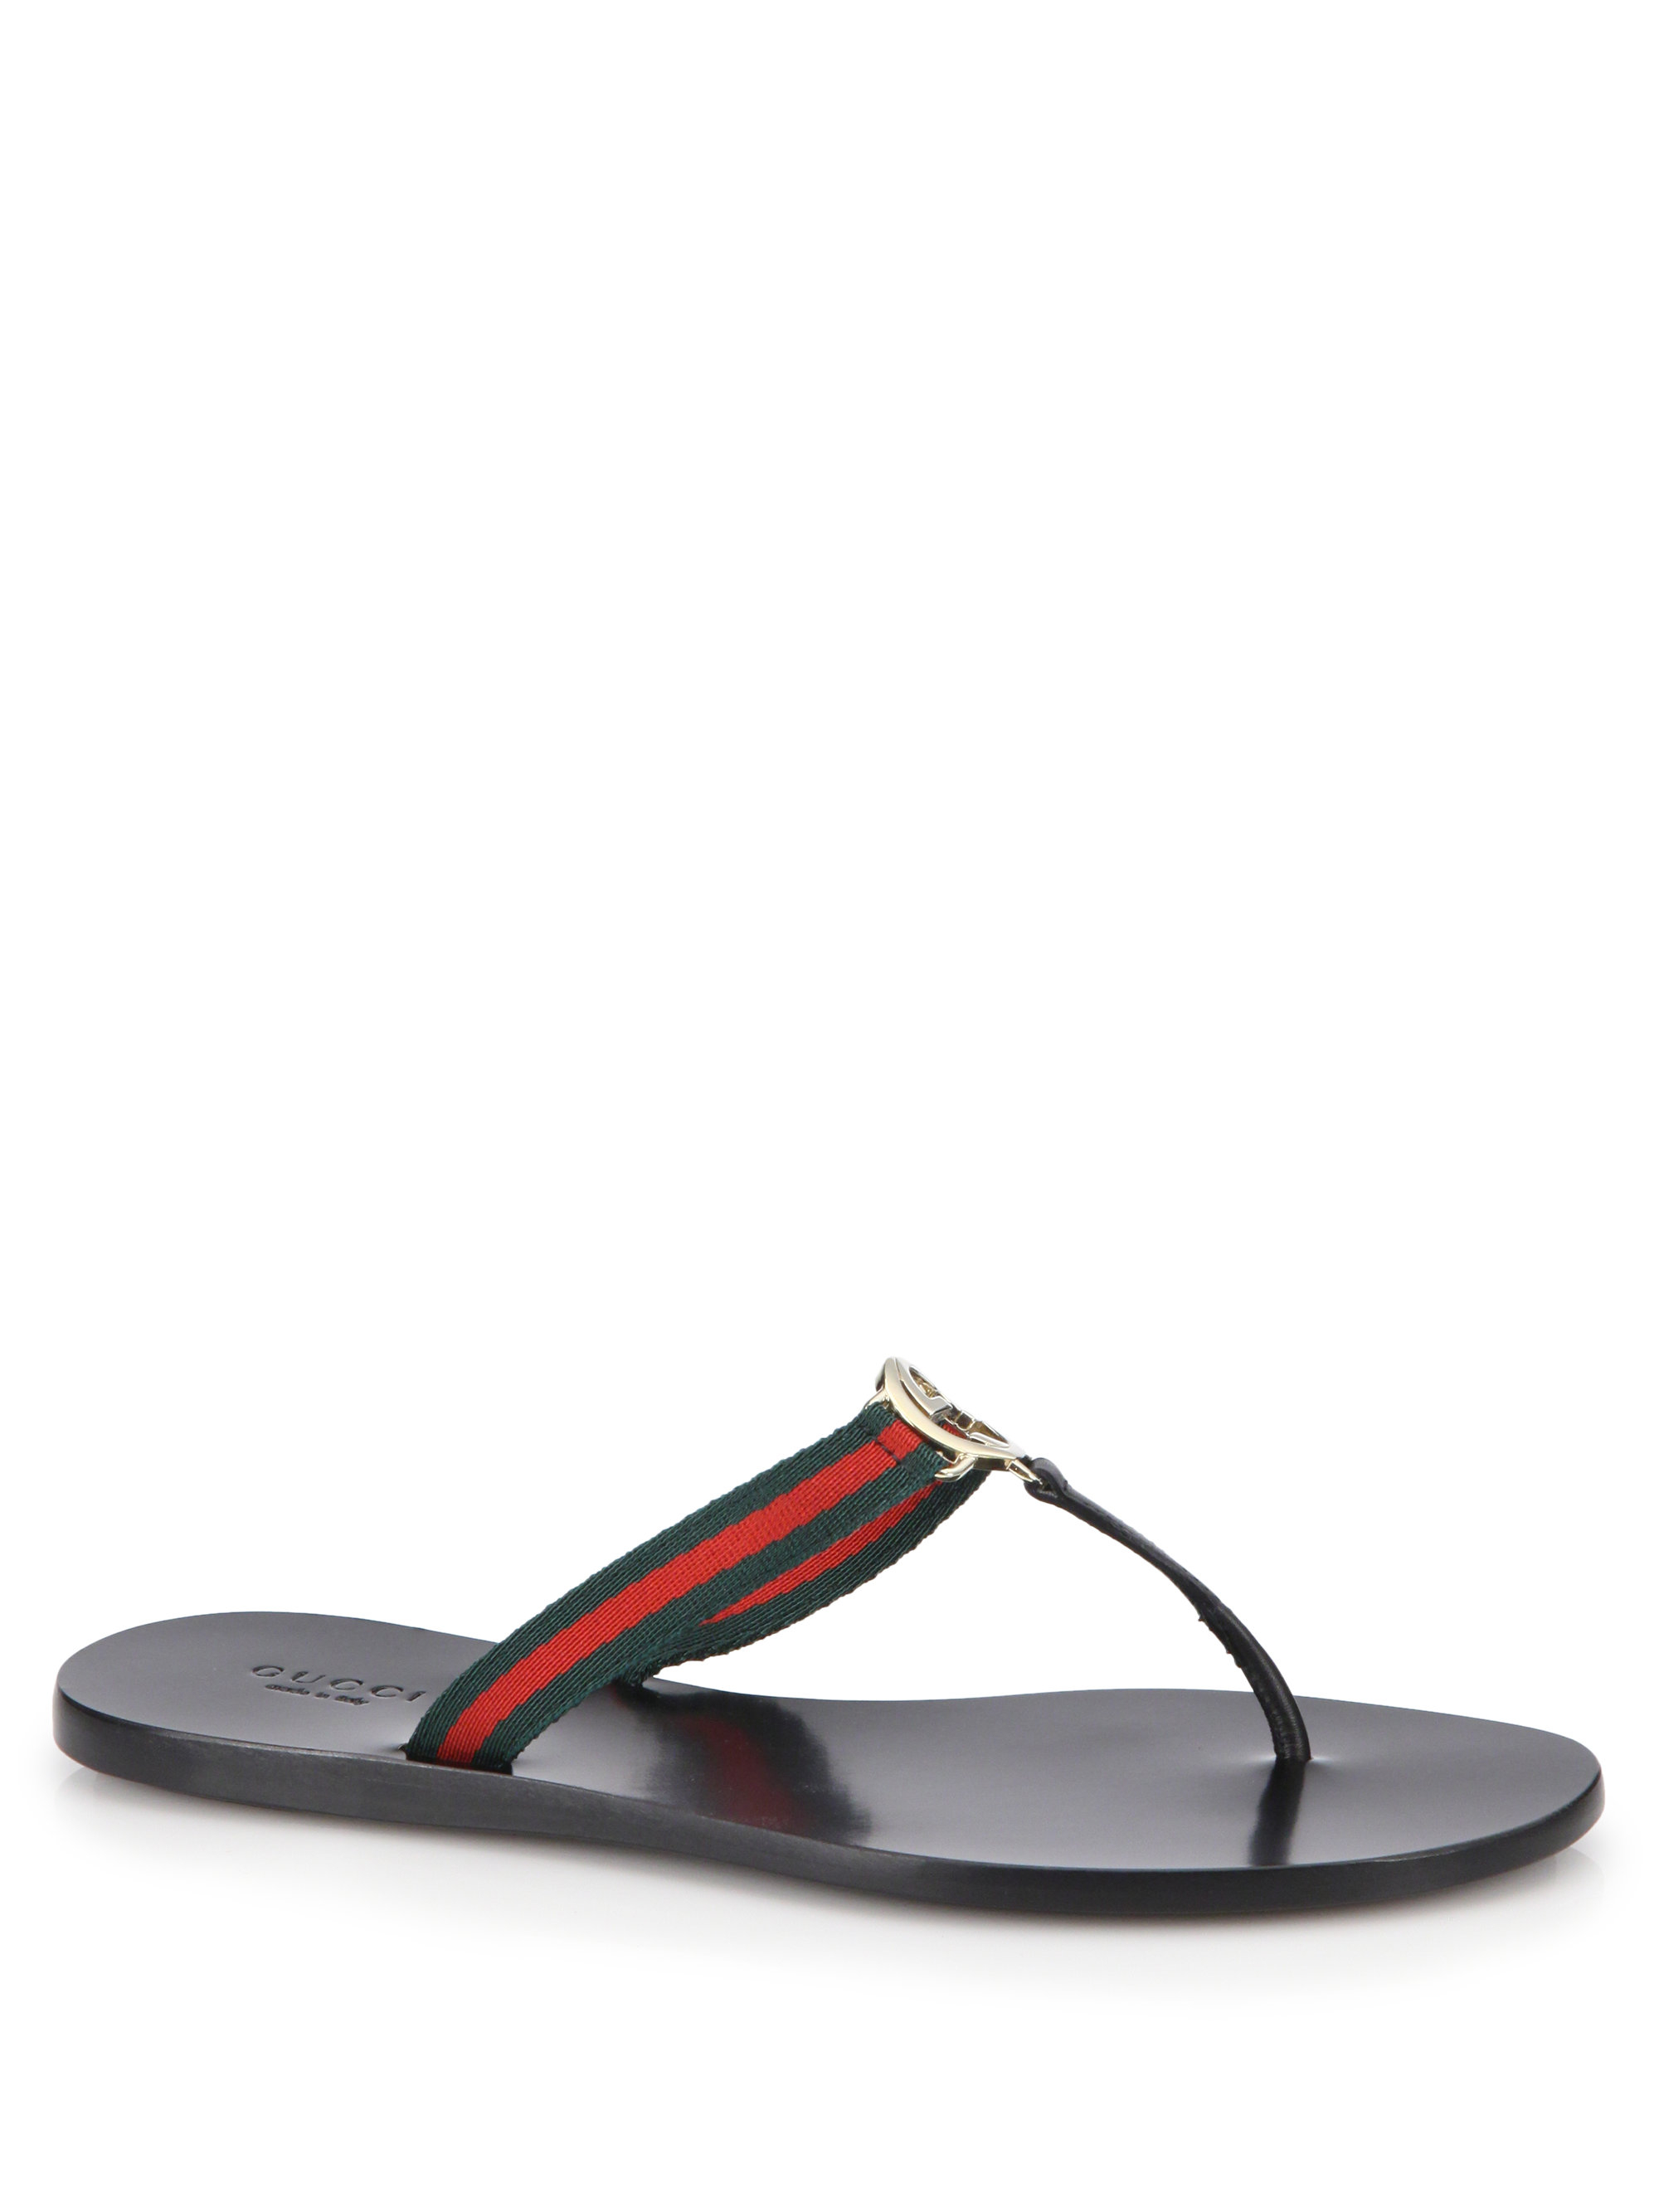 Gucci New Gg Canvas & Leather Signature Thong Sandals | Lyst